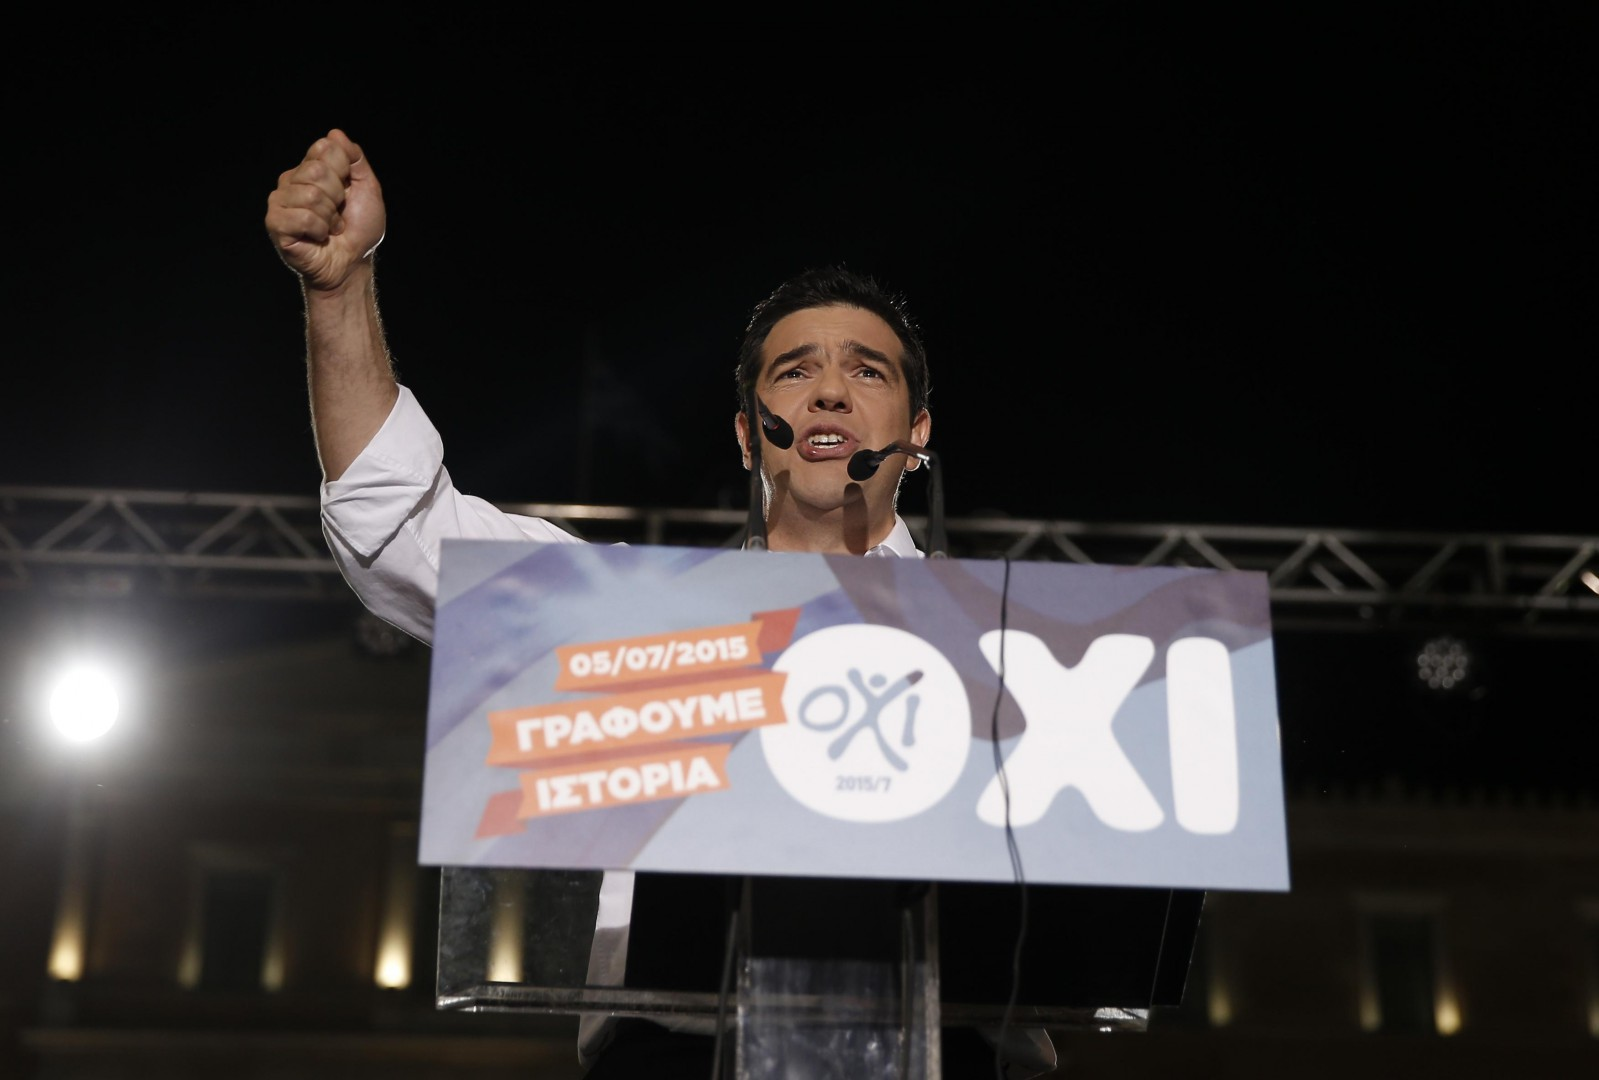 Greece's Prime Minister Alexis Tsipras delivers a speech during a rally organized by supporters of the No vote in Athens, Friday, July 3, 2015. A new opinion poll shows a dead heat in Greece's referendum campaign with just two days to go before Sunday's vote on whether Greeks should accept more austerity in return for bailout loans. The podium reading ''We are writing history, NO.''  (ANSA/AP Photo/Petros Giannakouris)